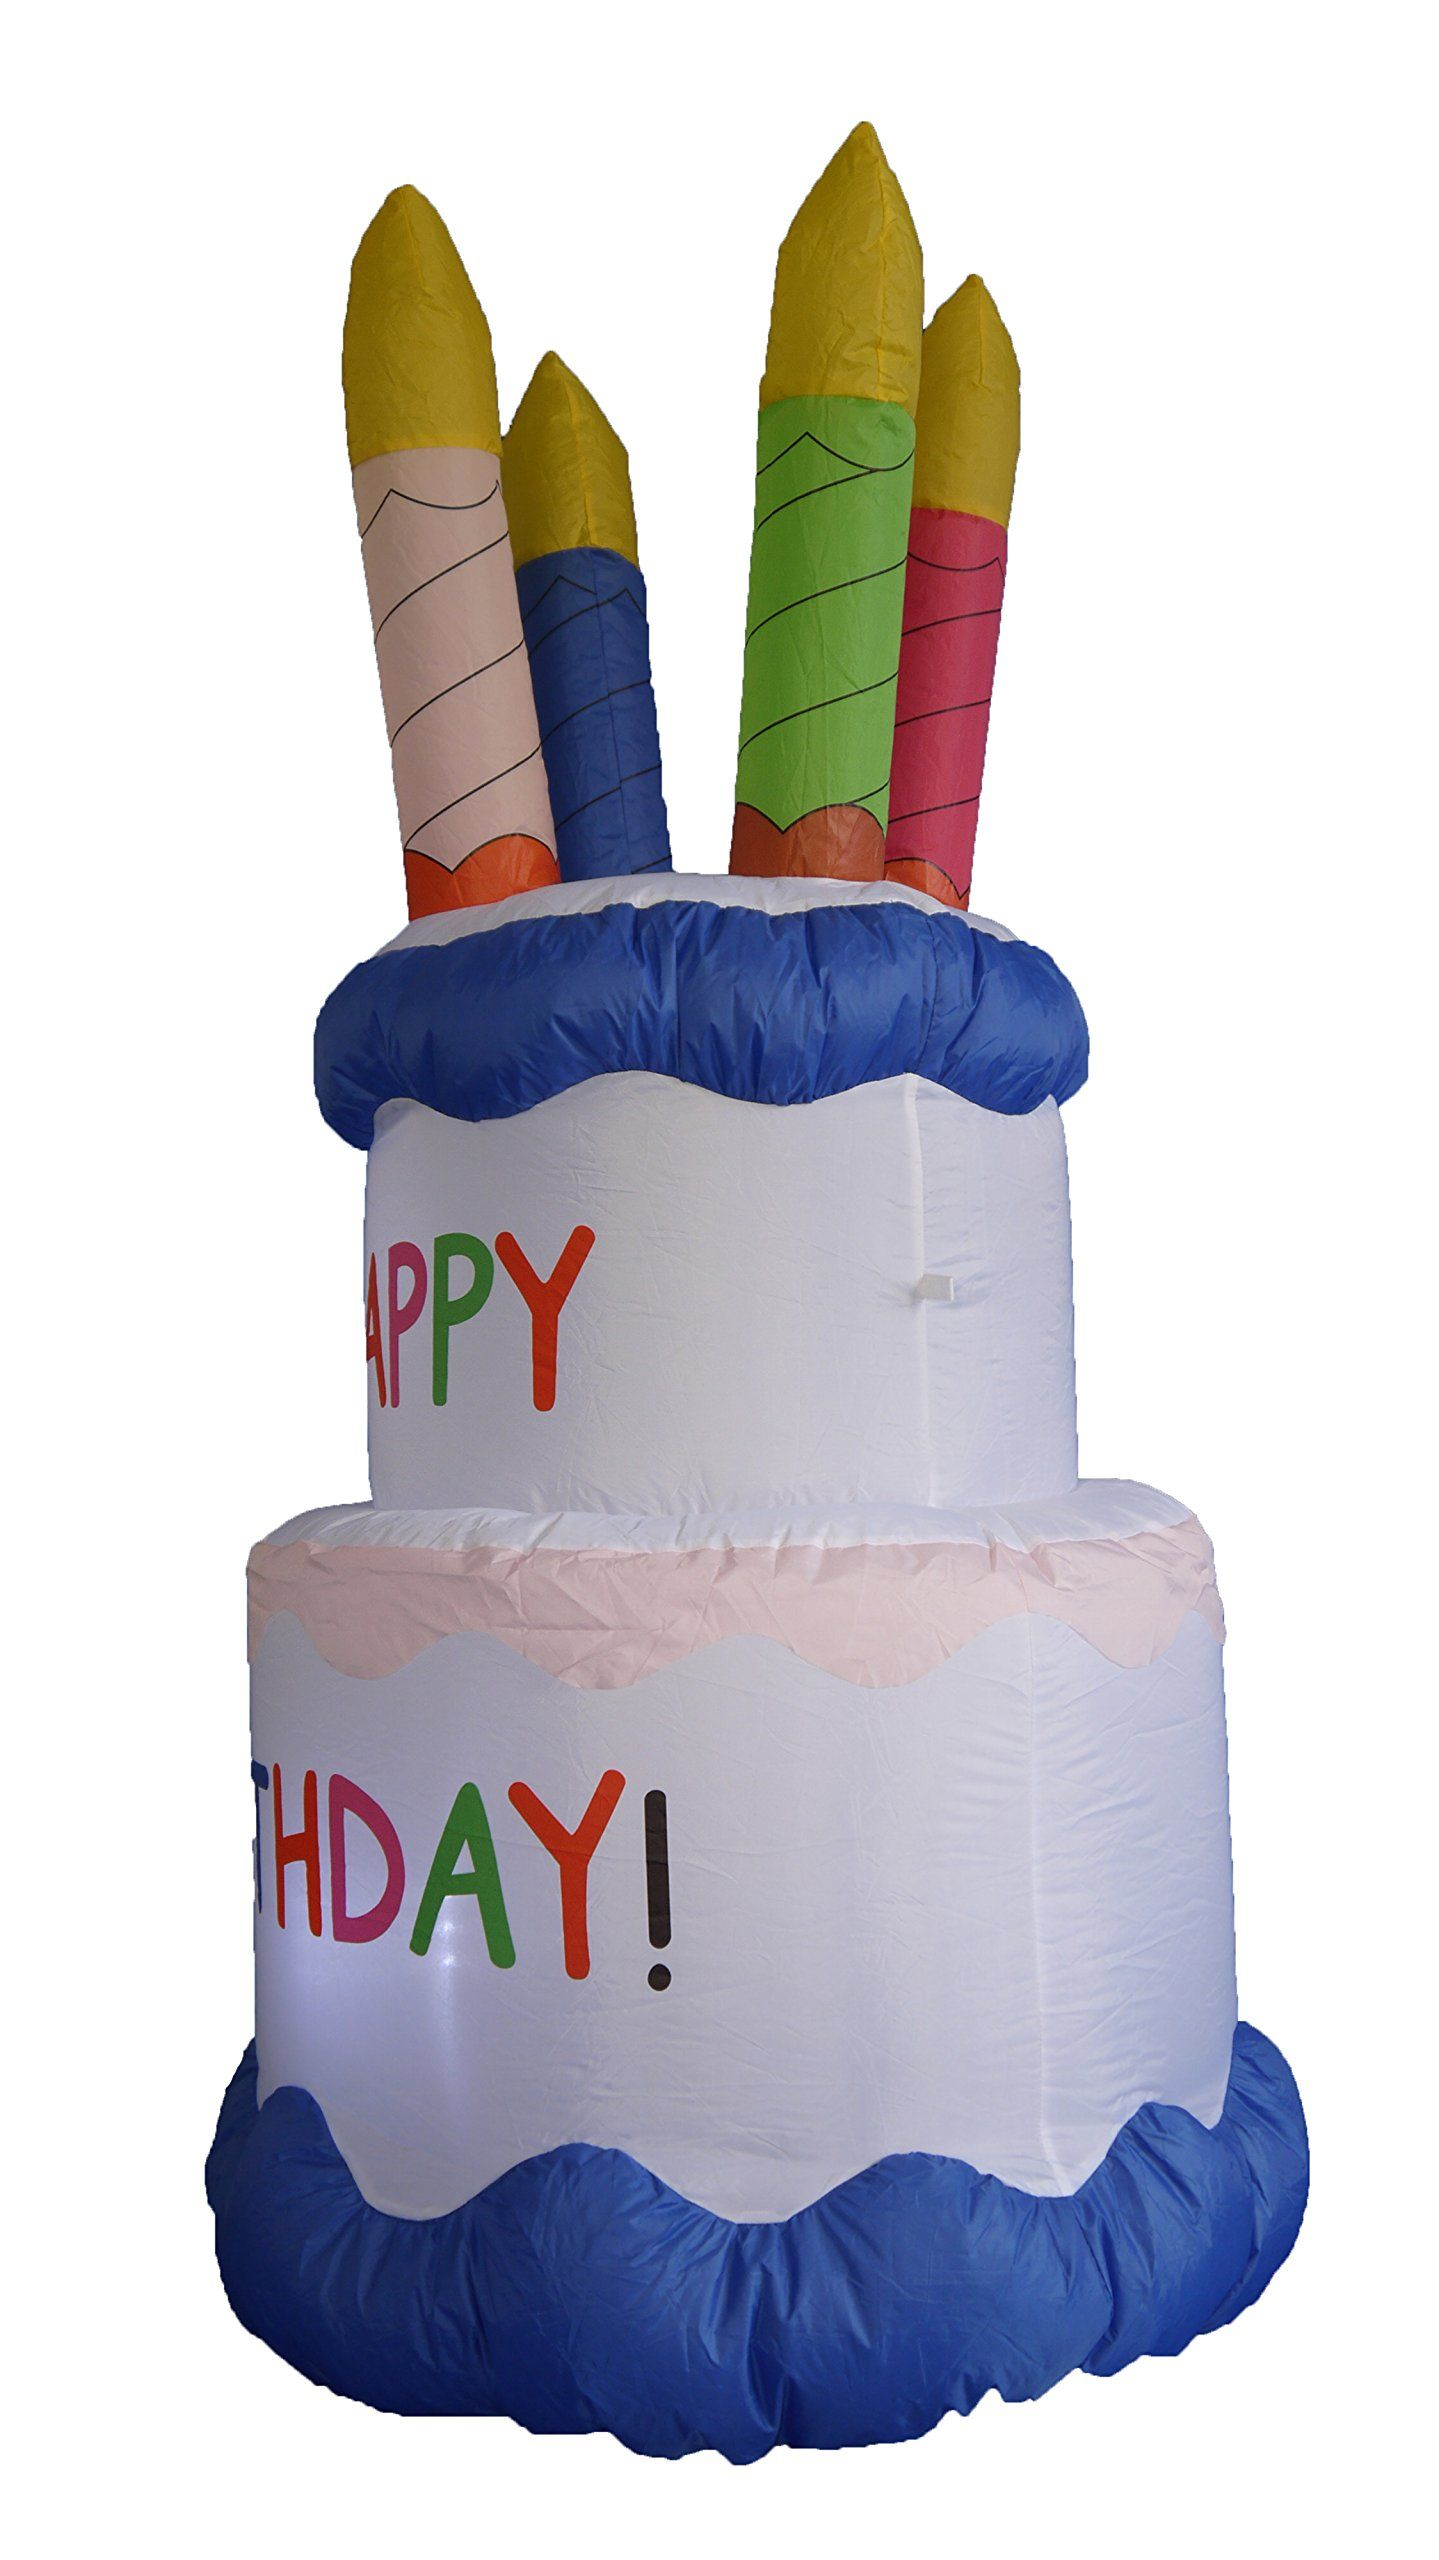 Brilliant 6 Foot Inflatable Happy Birthday Cake With Candles Yard Decoration Personalised Birthday Cards Bromeletsinfo